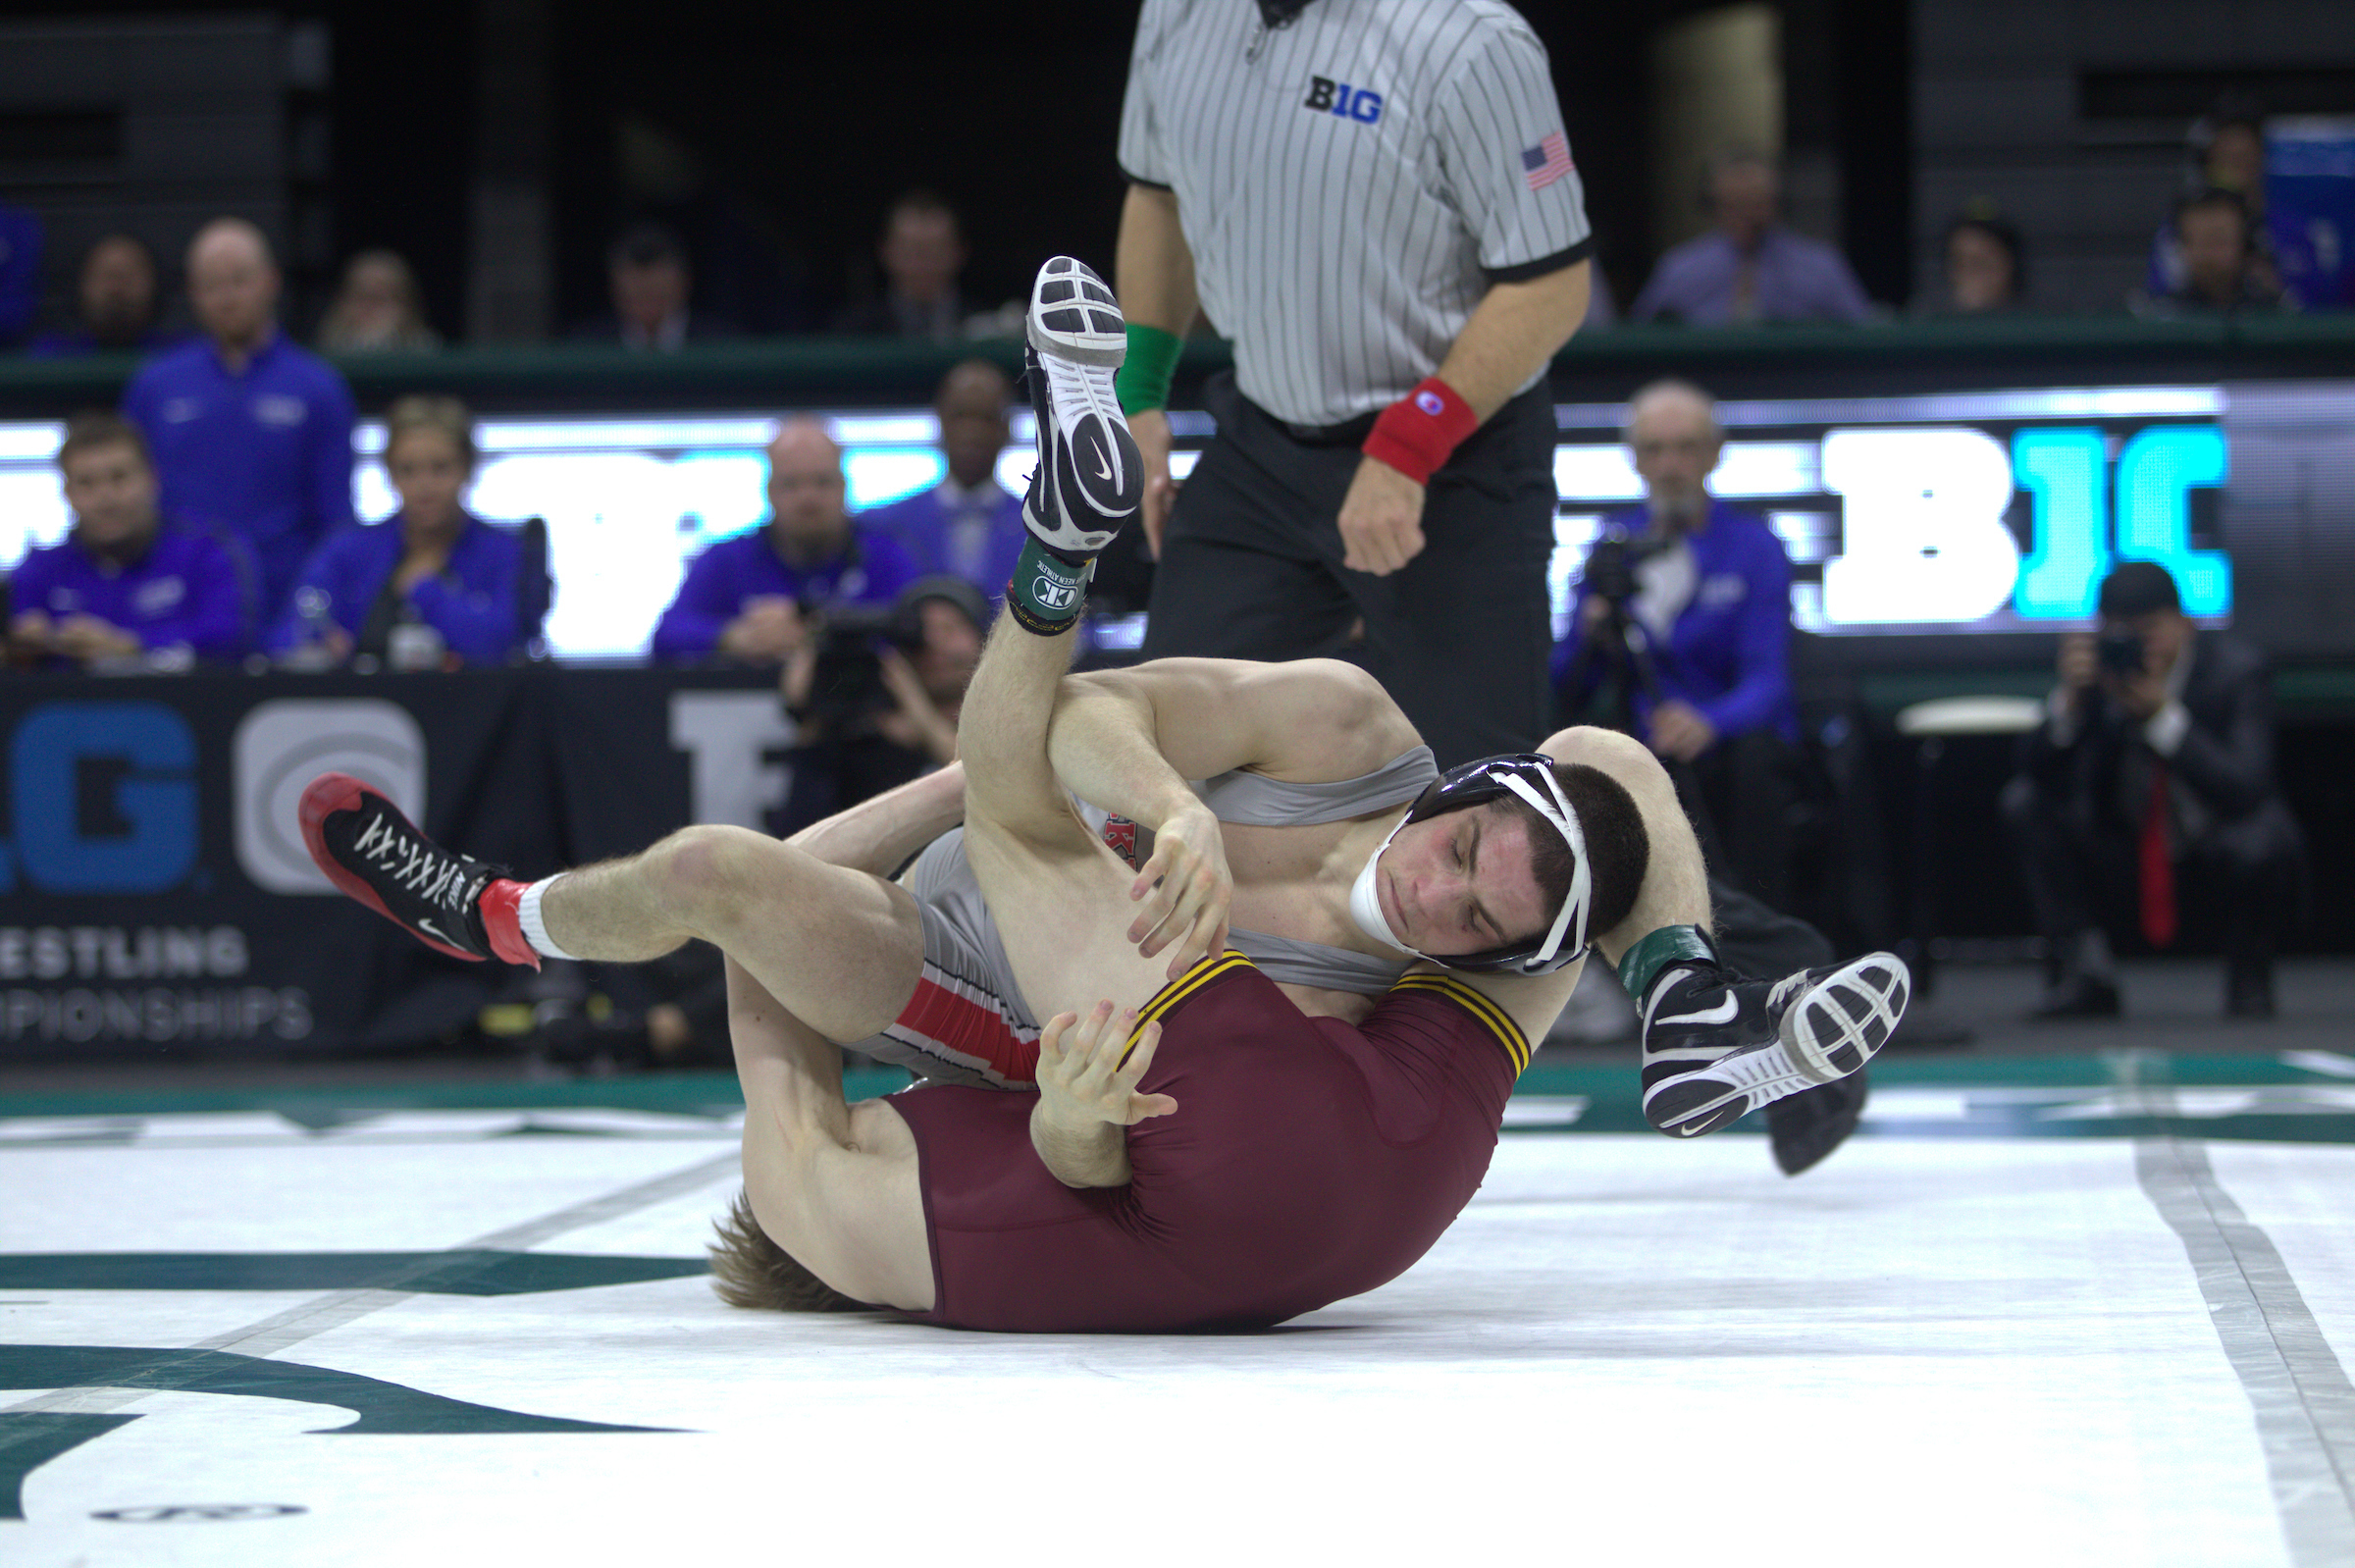 2018 Big Ten Wrestling Championships